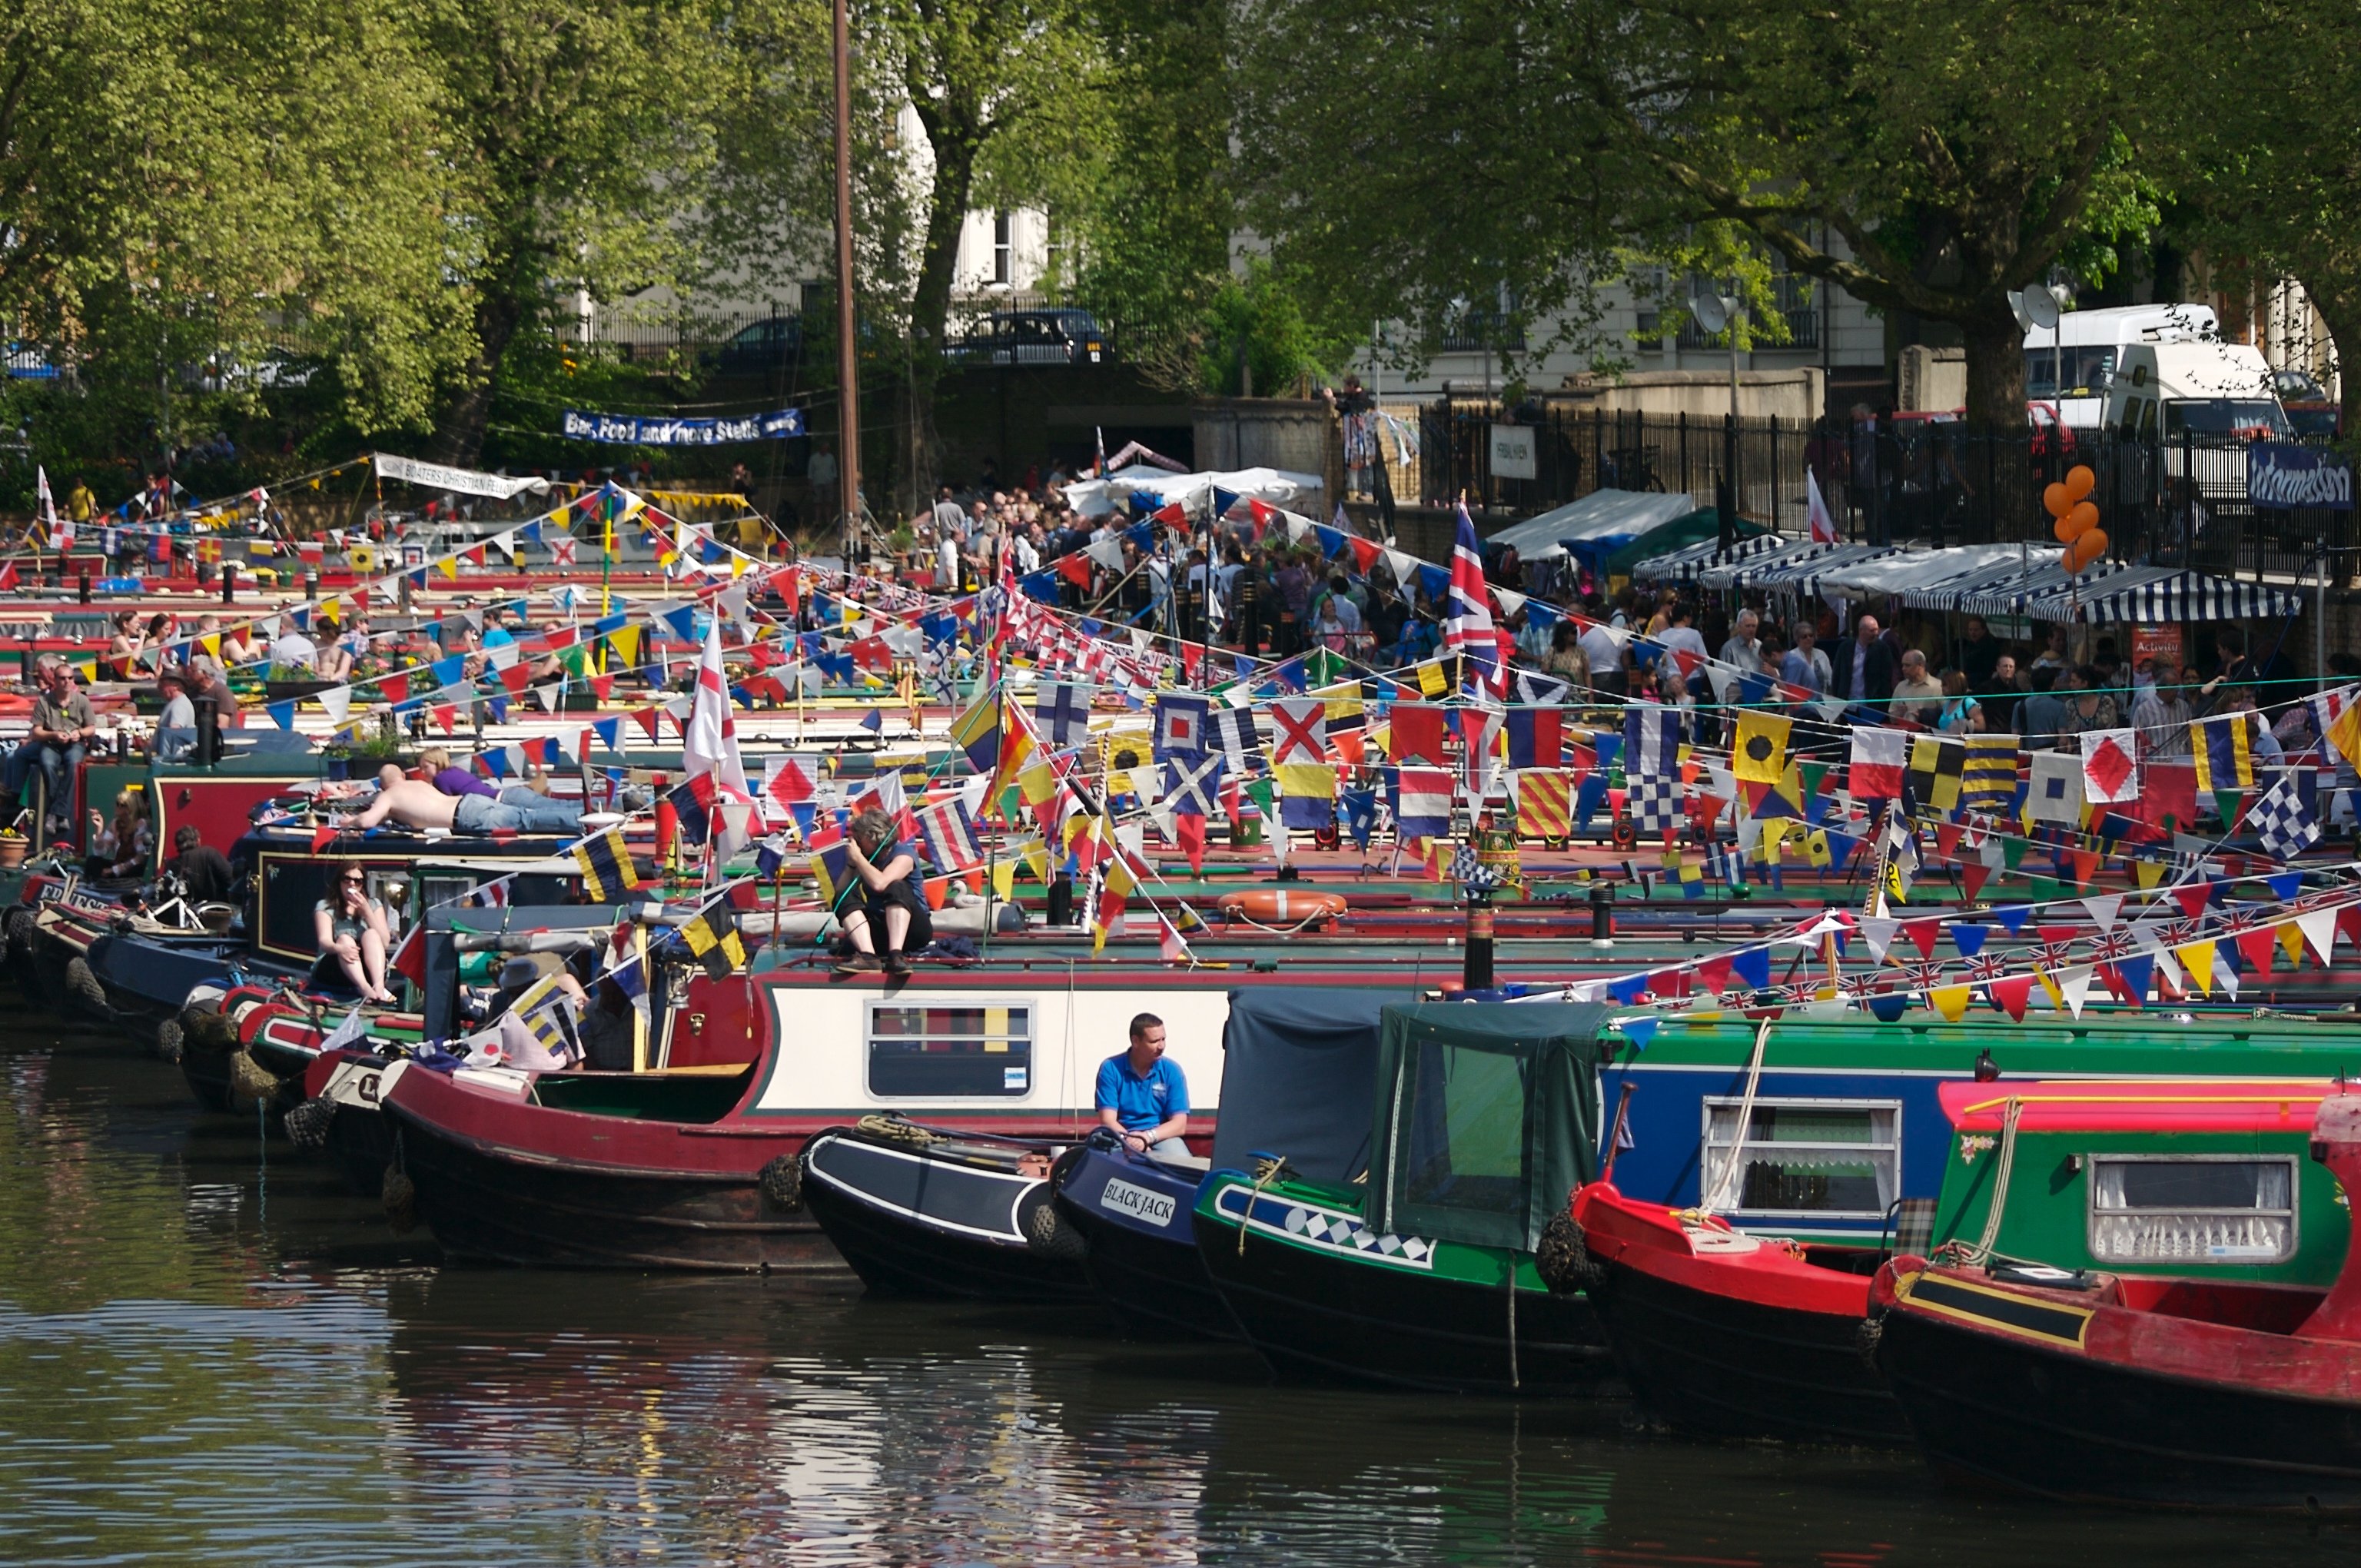 The Canalway Cavalcade is a gathering of canal boats held at Little Venice in London. These shots are from May 2009.